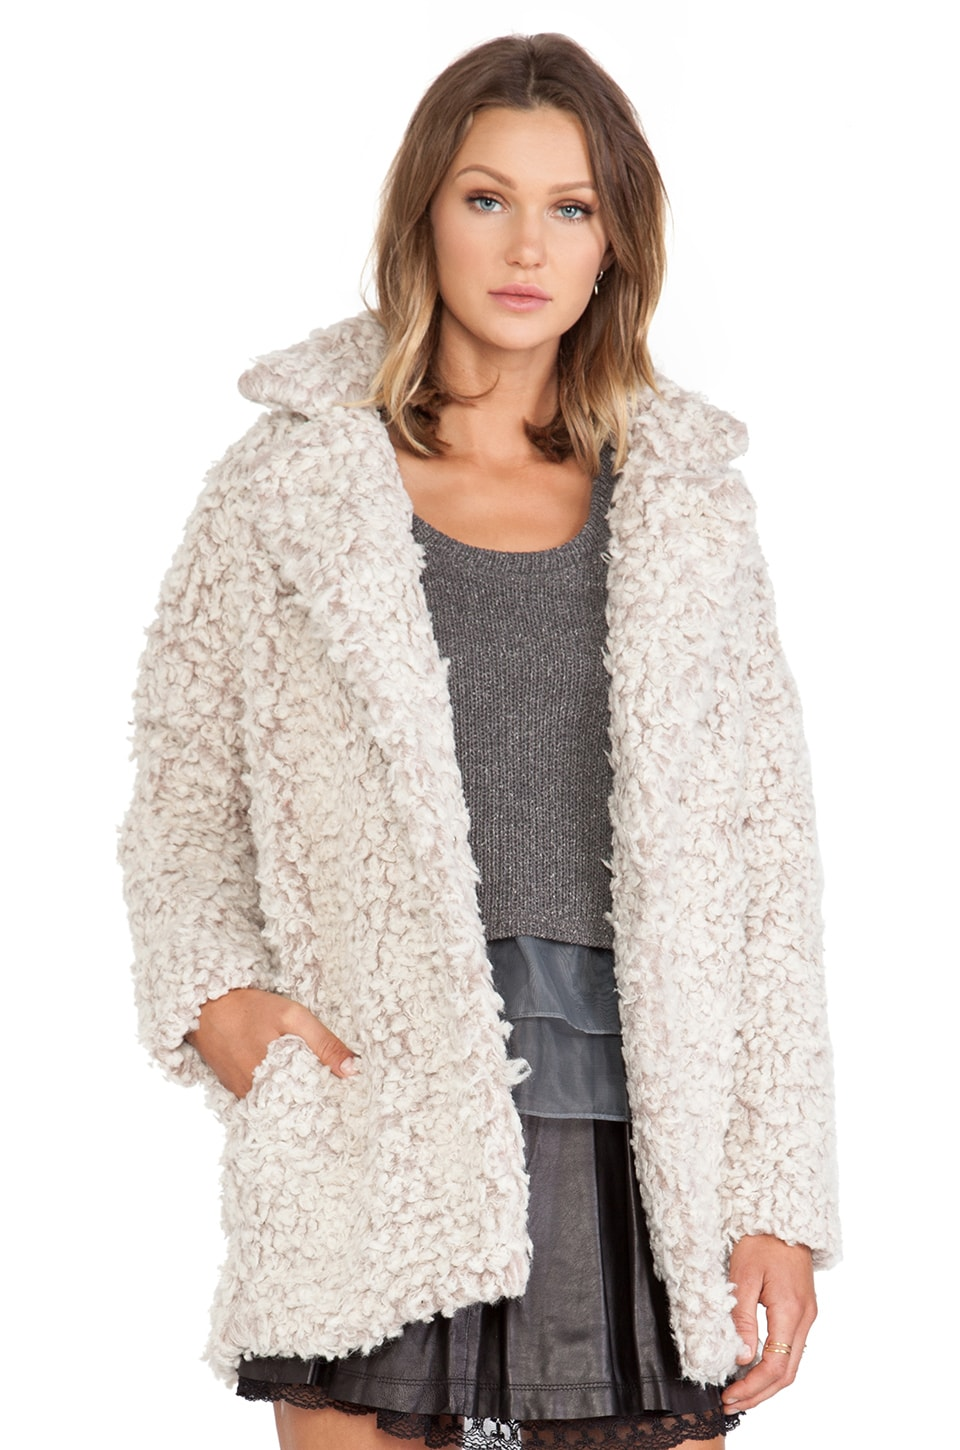 J.O.A. Blazer Boucle Faux Fur Coat in Dust Rose